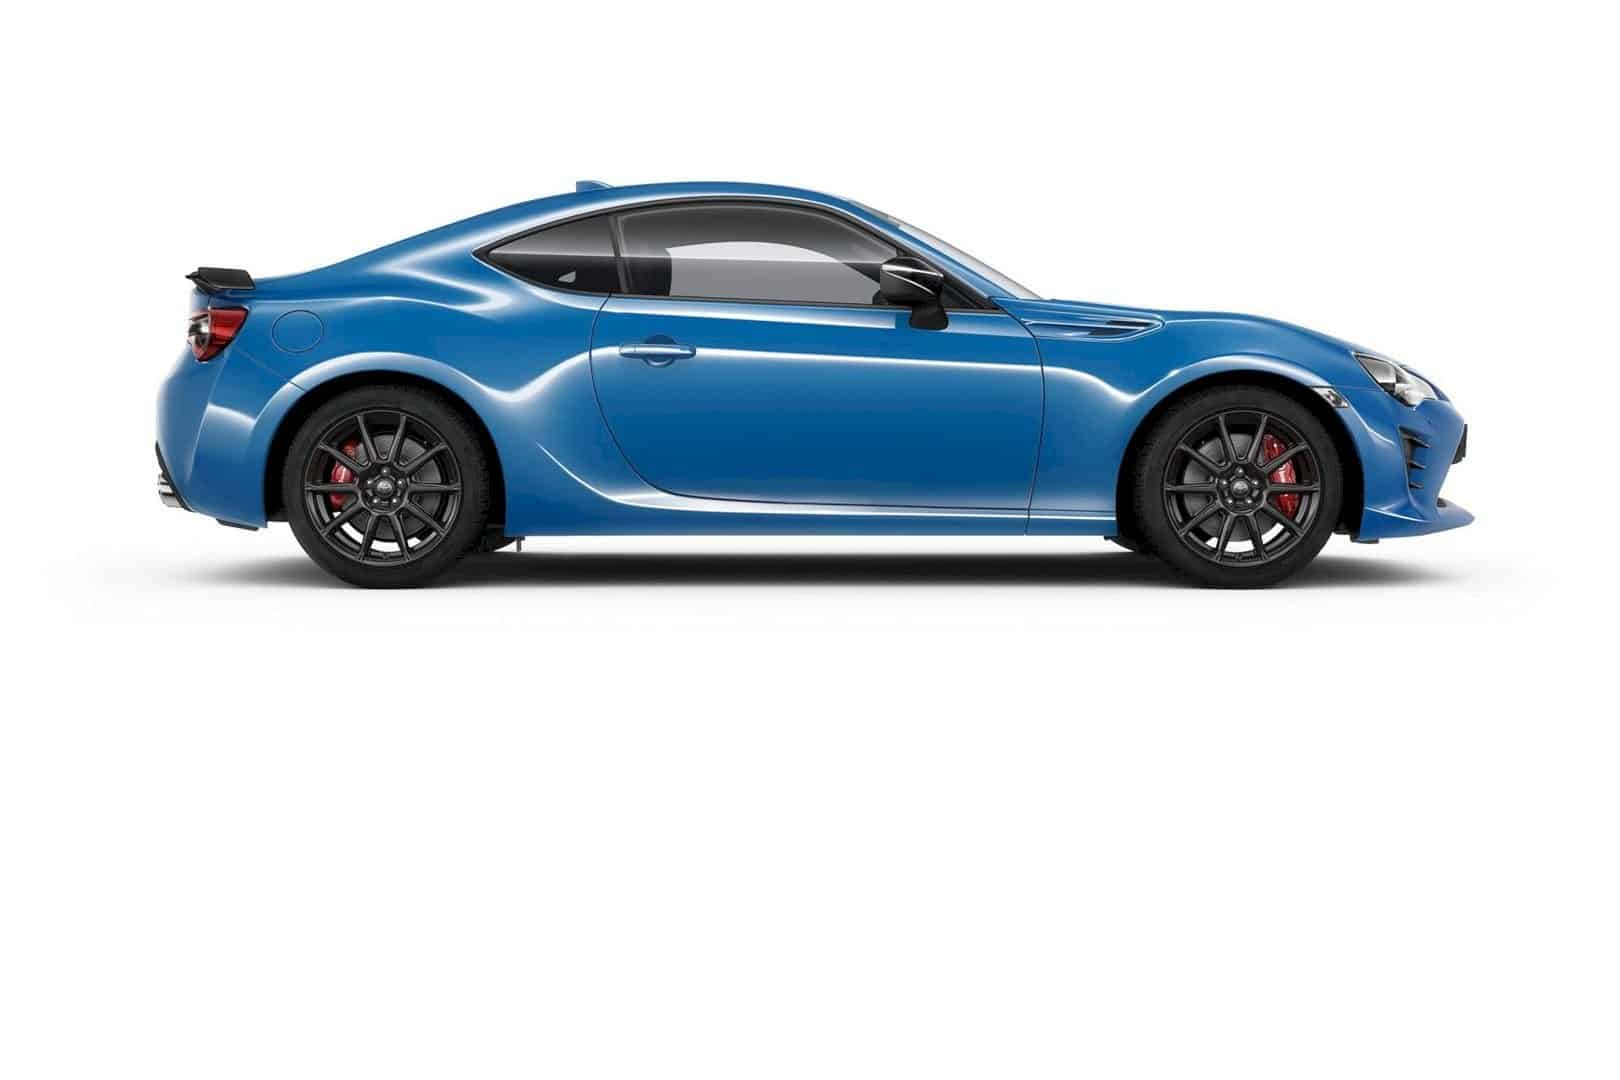 Toyota Gt86 Club Series Blue Edition 4